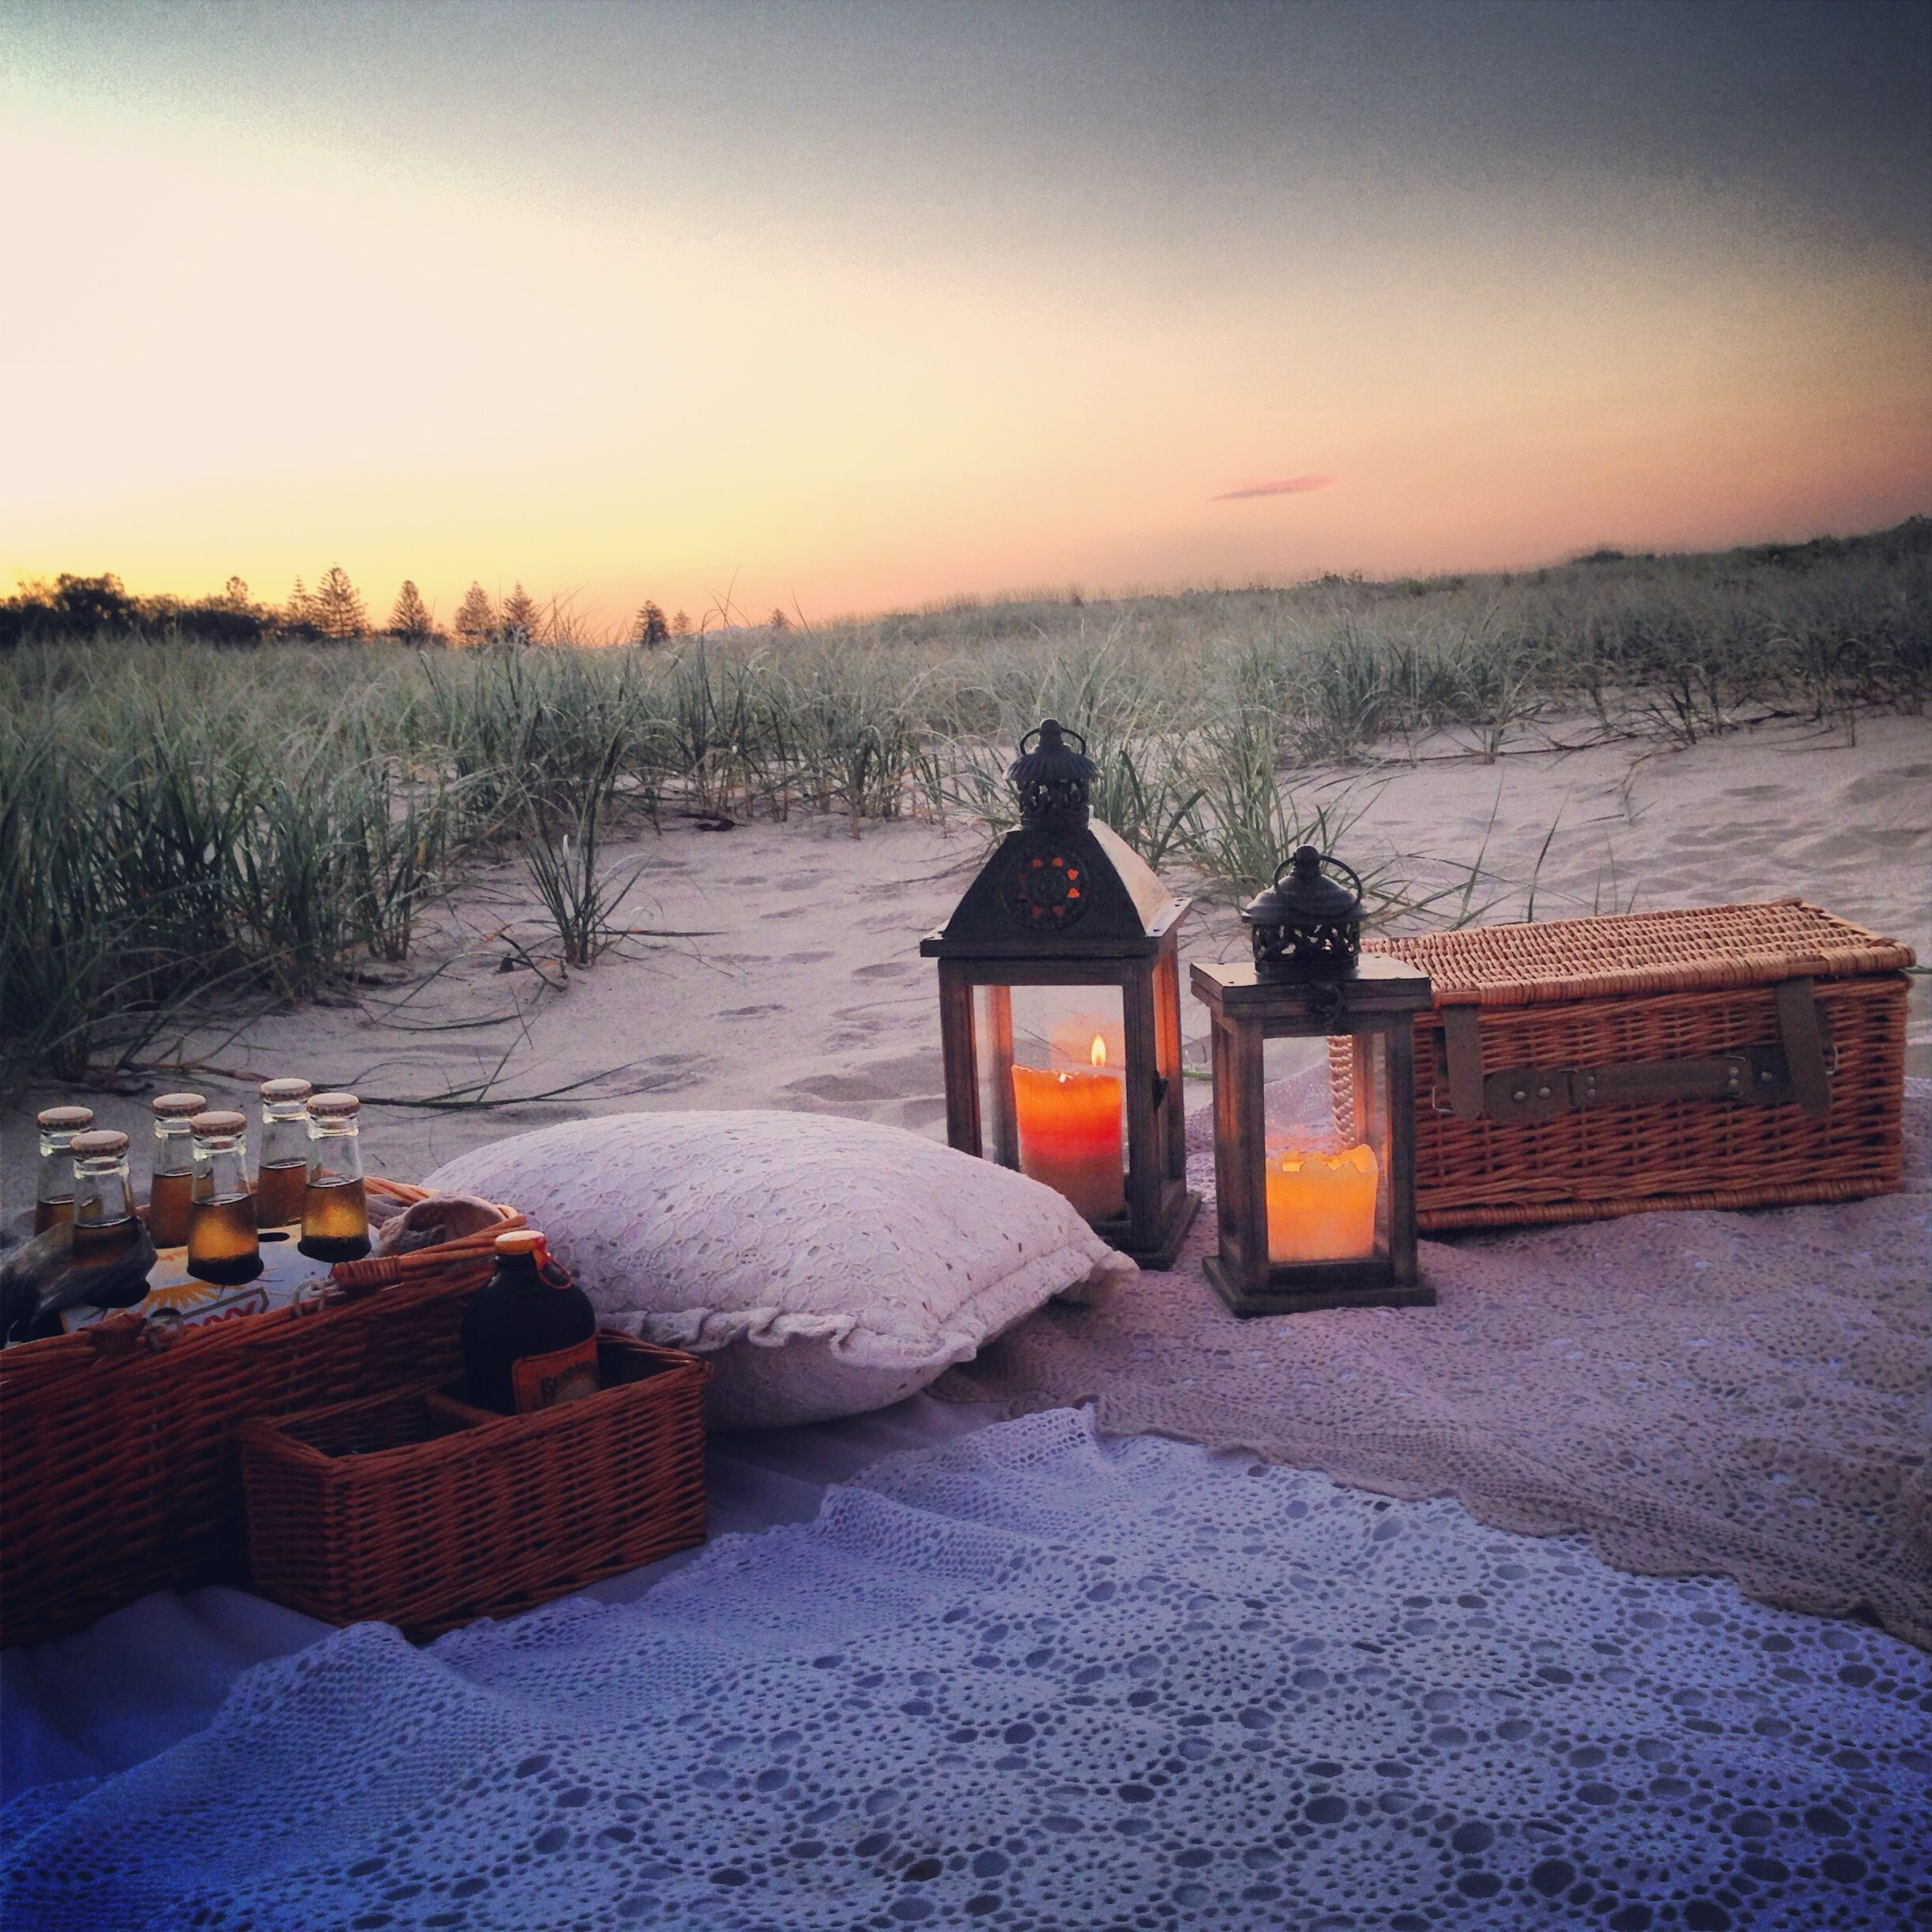 Beach picnic at sunset ~ with lanterns, candles, vintage crochet ...